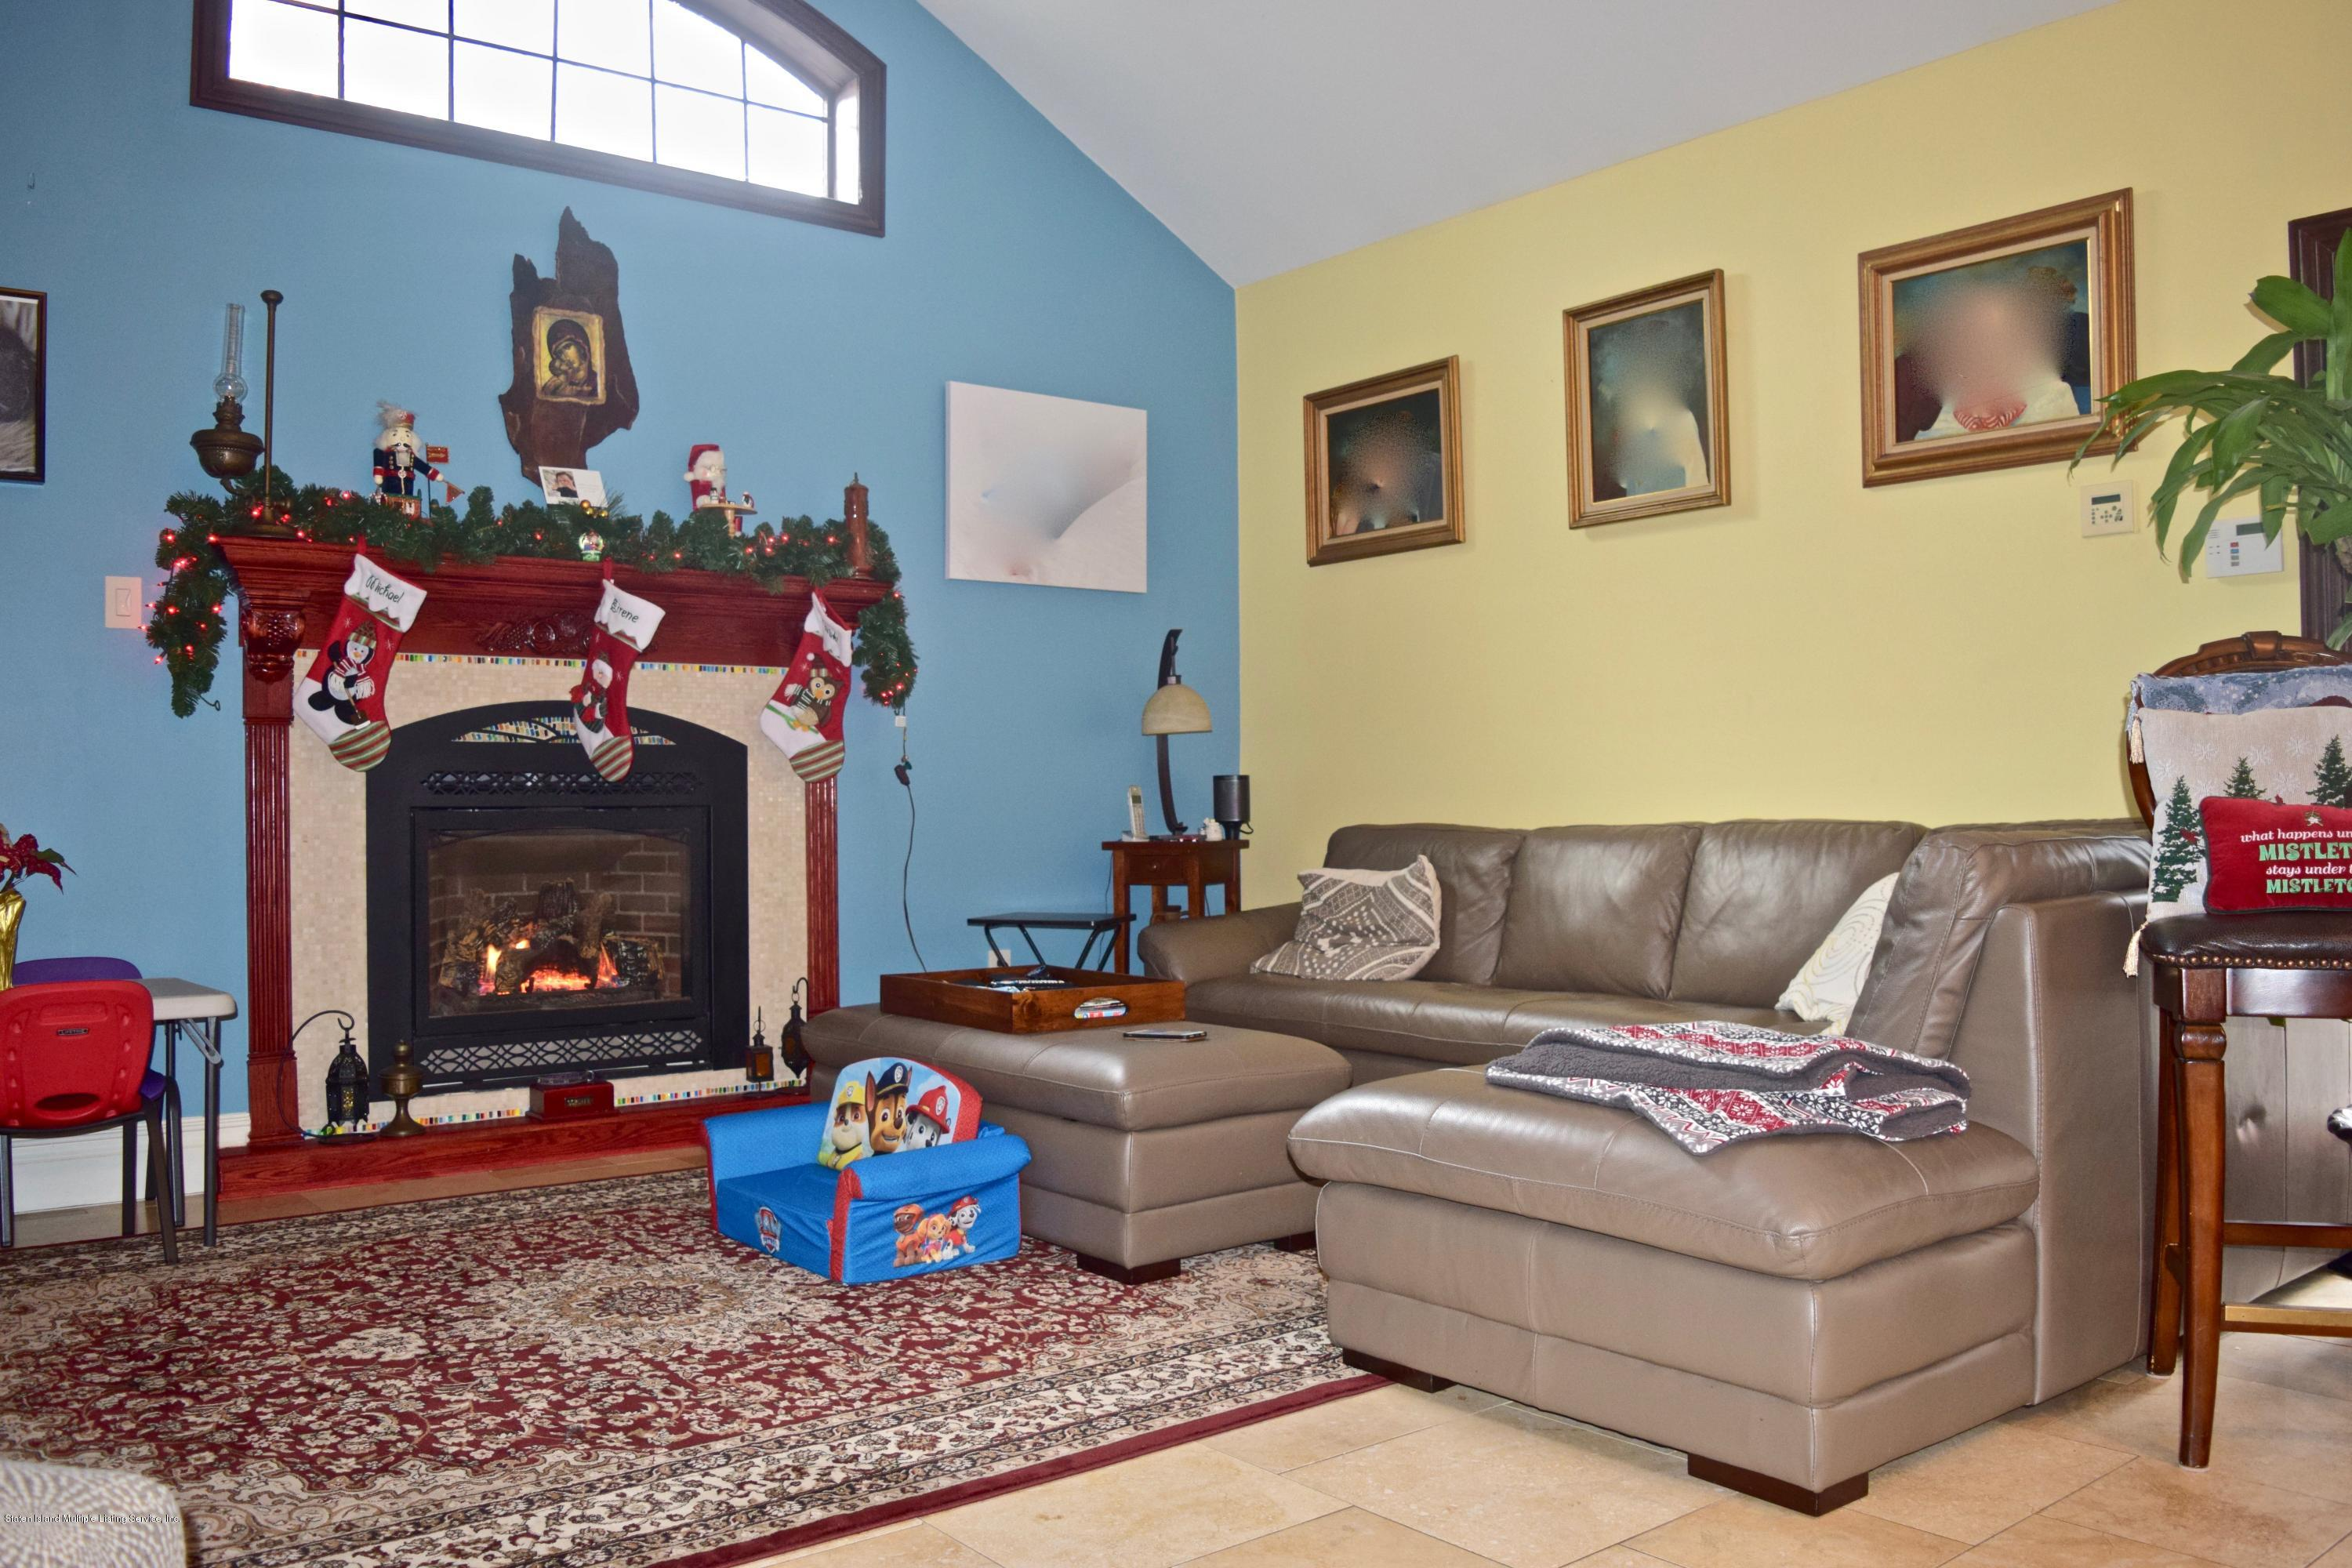 Single Family - Detached 107 Northern Boulevard  Staten Island, NY 10301, MLS-1124986-5